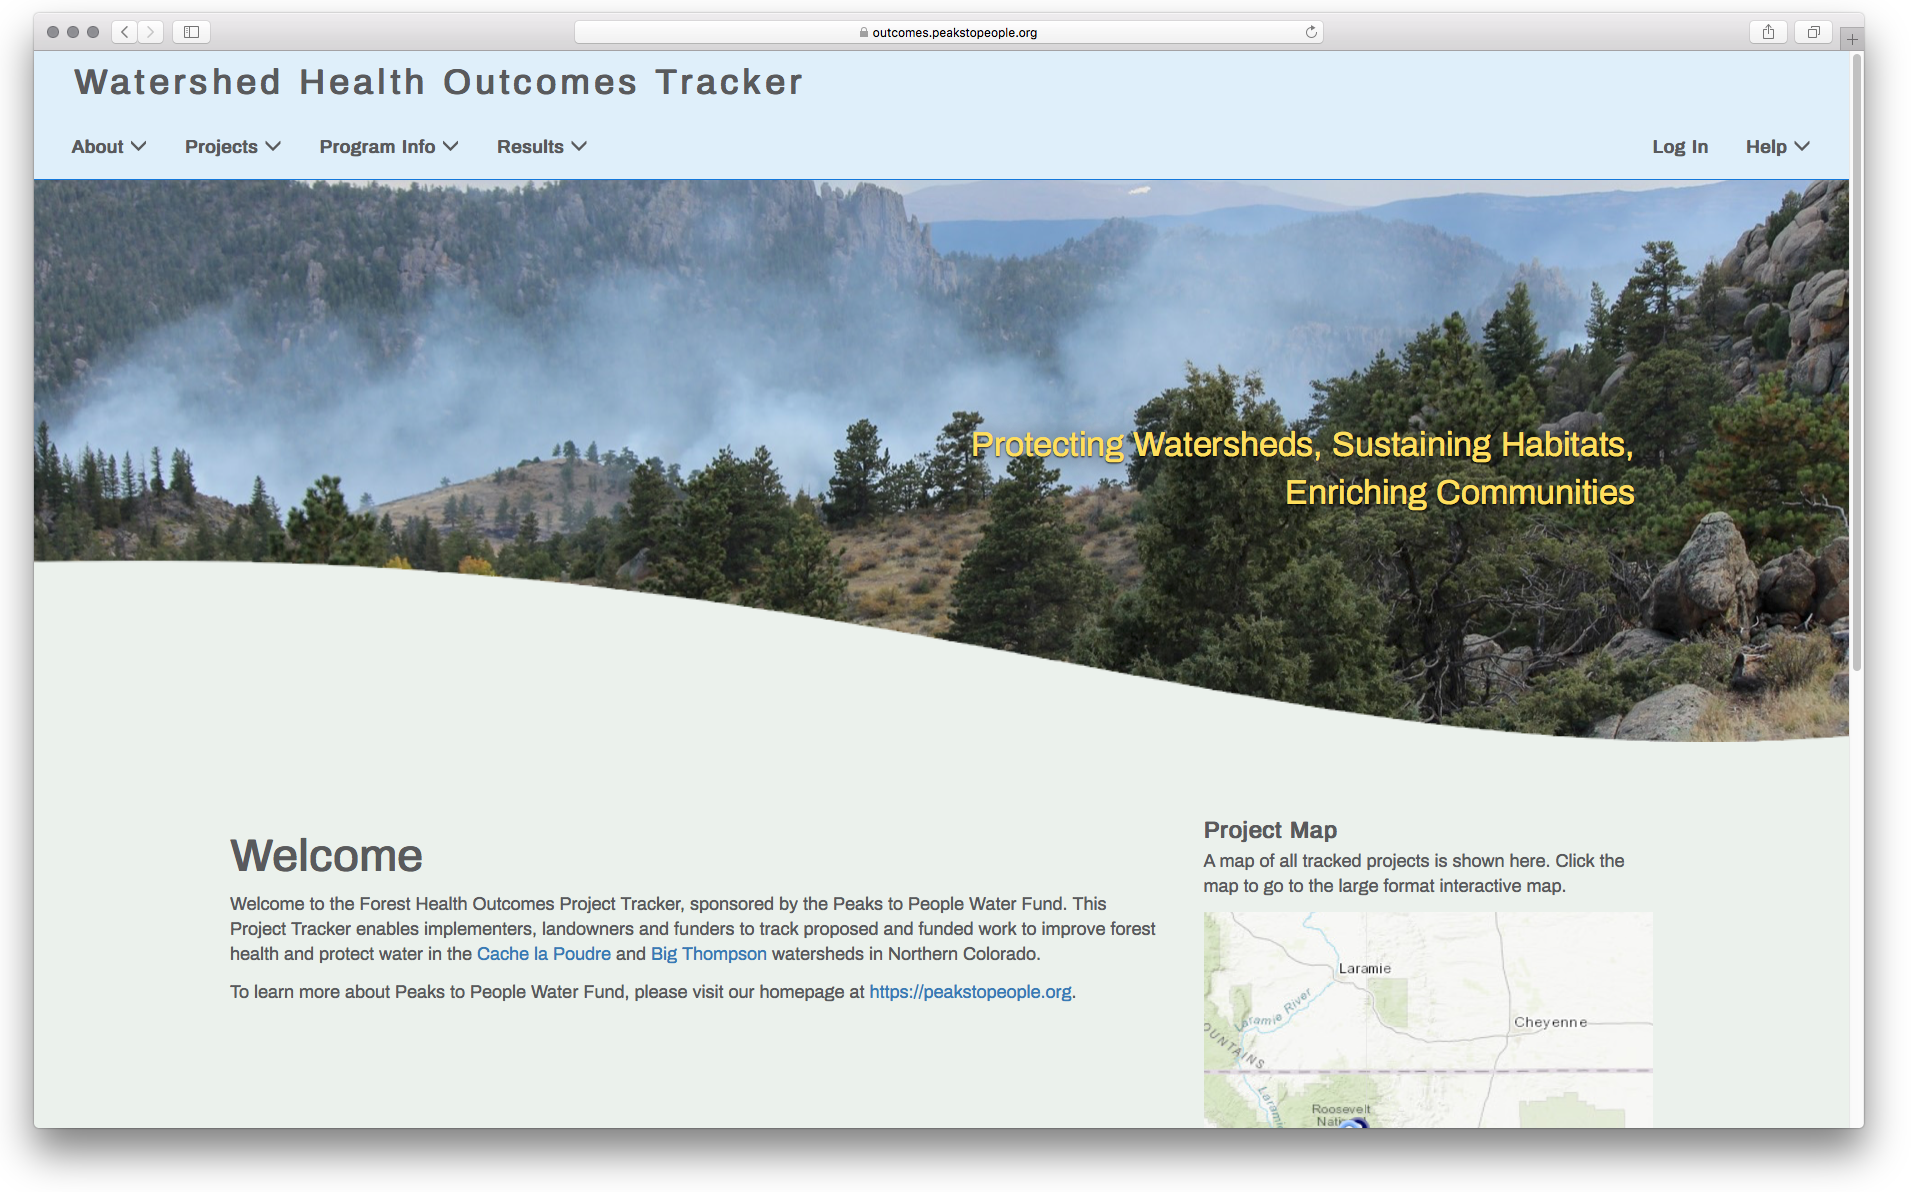 Peaks to People Watershed Health Outcomes Tracker